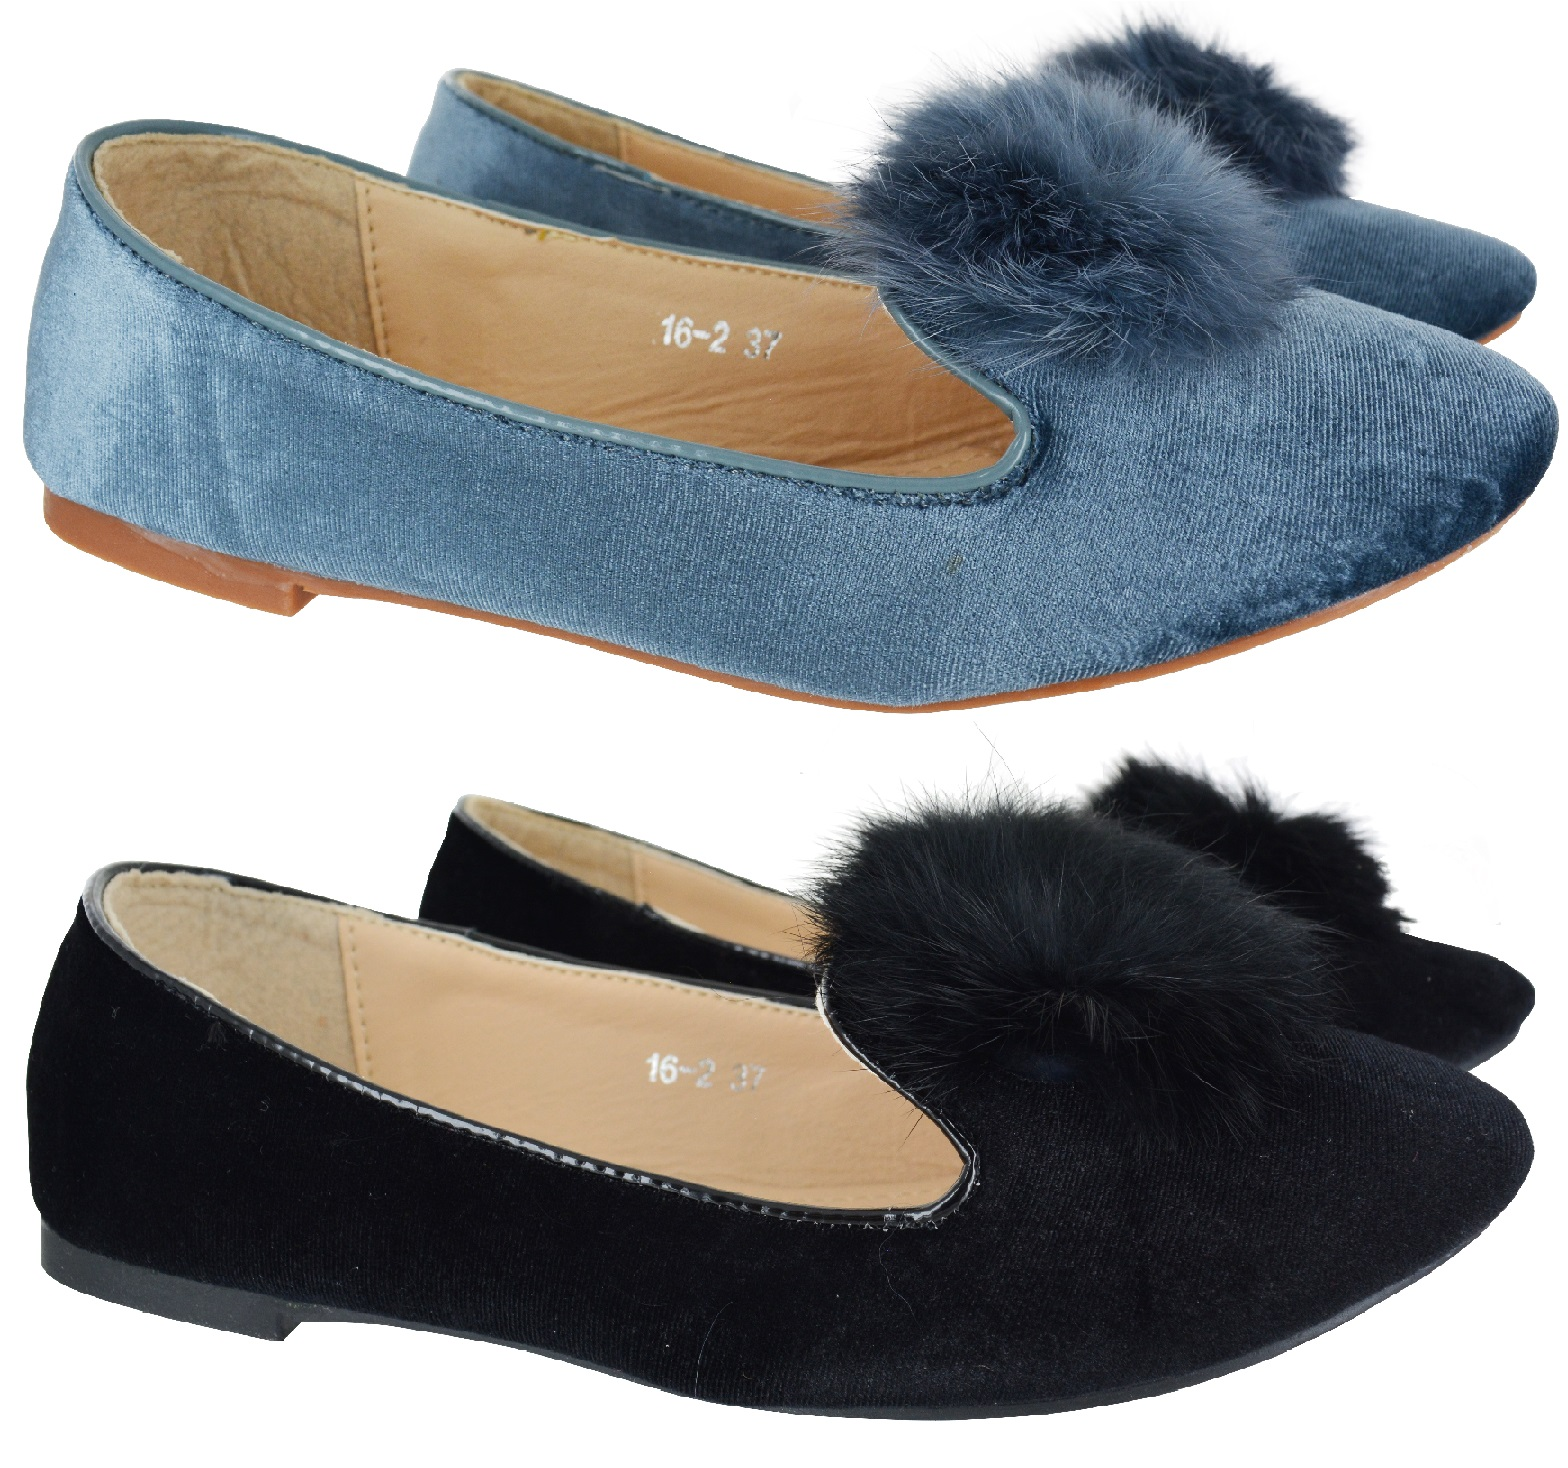 aad2ff75eaa4 Sentinel WOMENS LADIES FLAT SHOES PUMPS POM POM LOAFERS BALLET FUR FLUFFY  SHOE SIZE 3-8